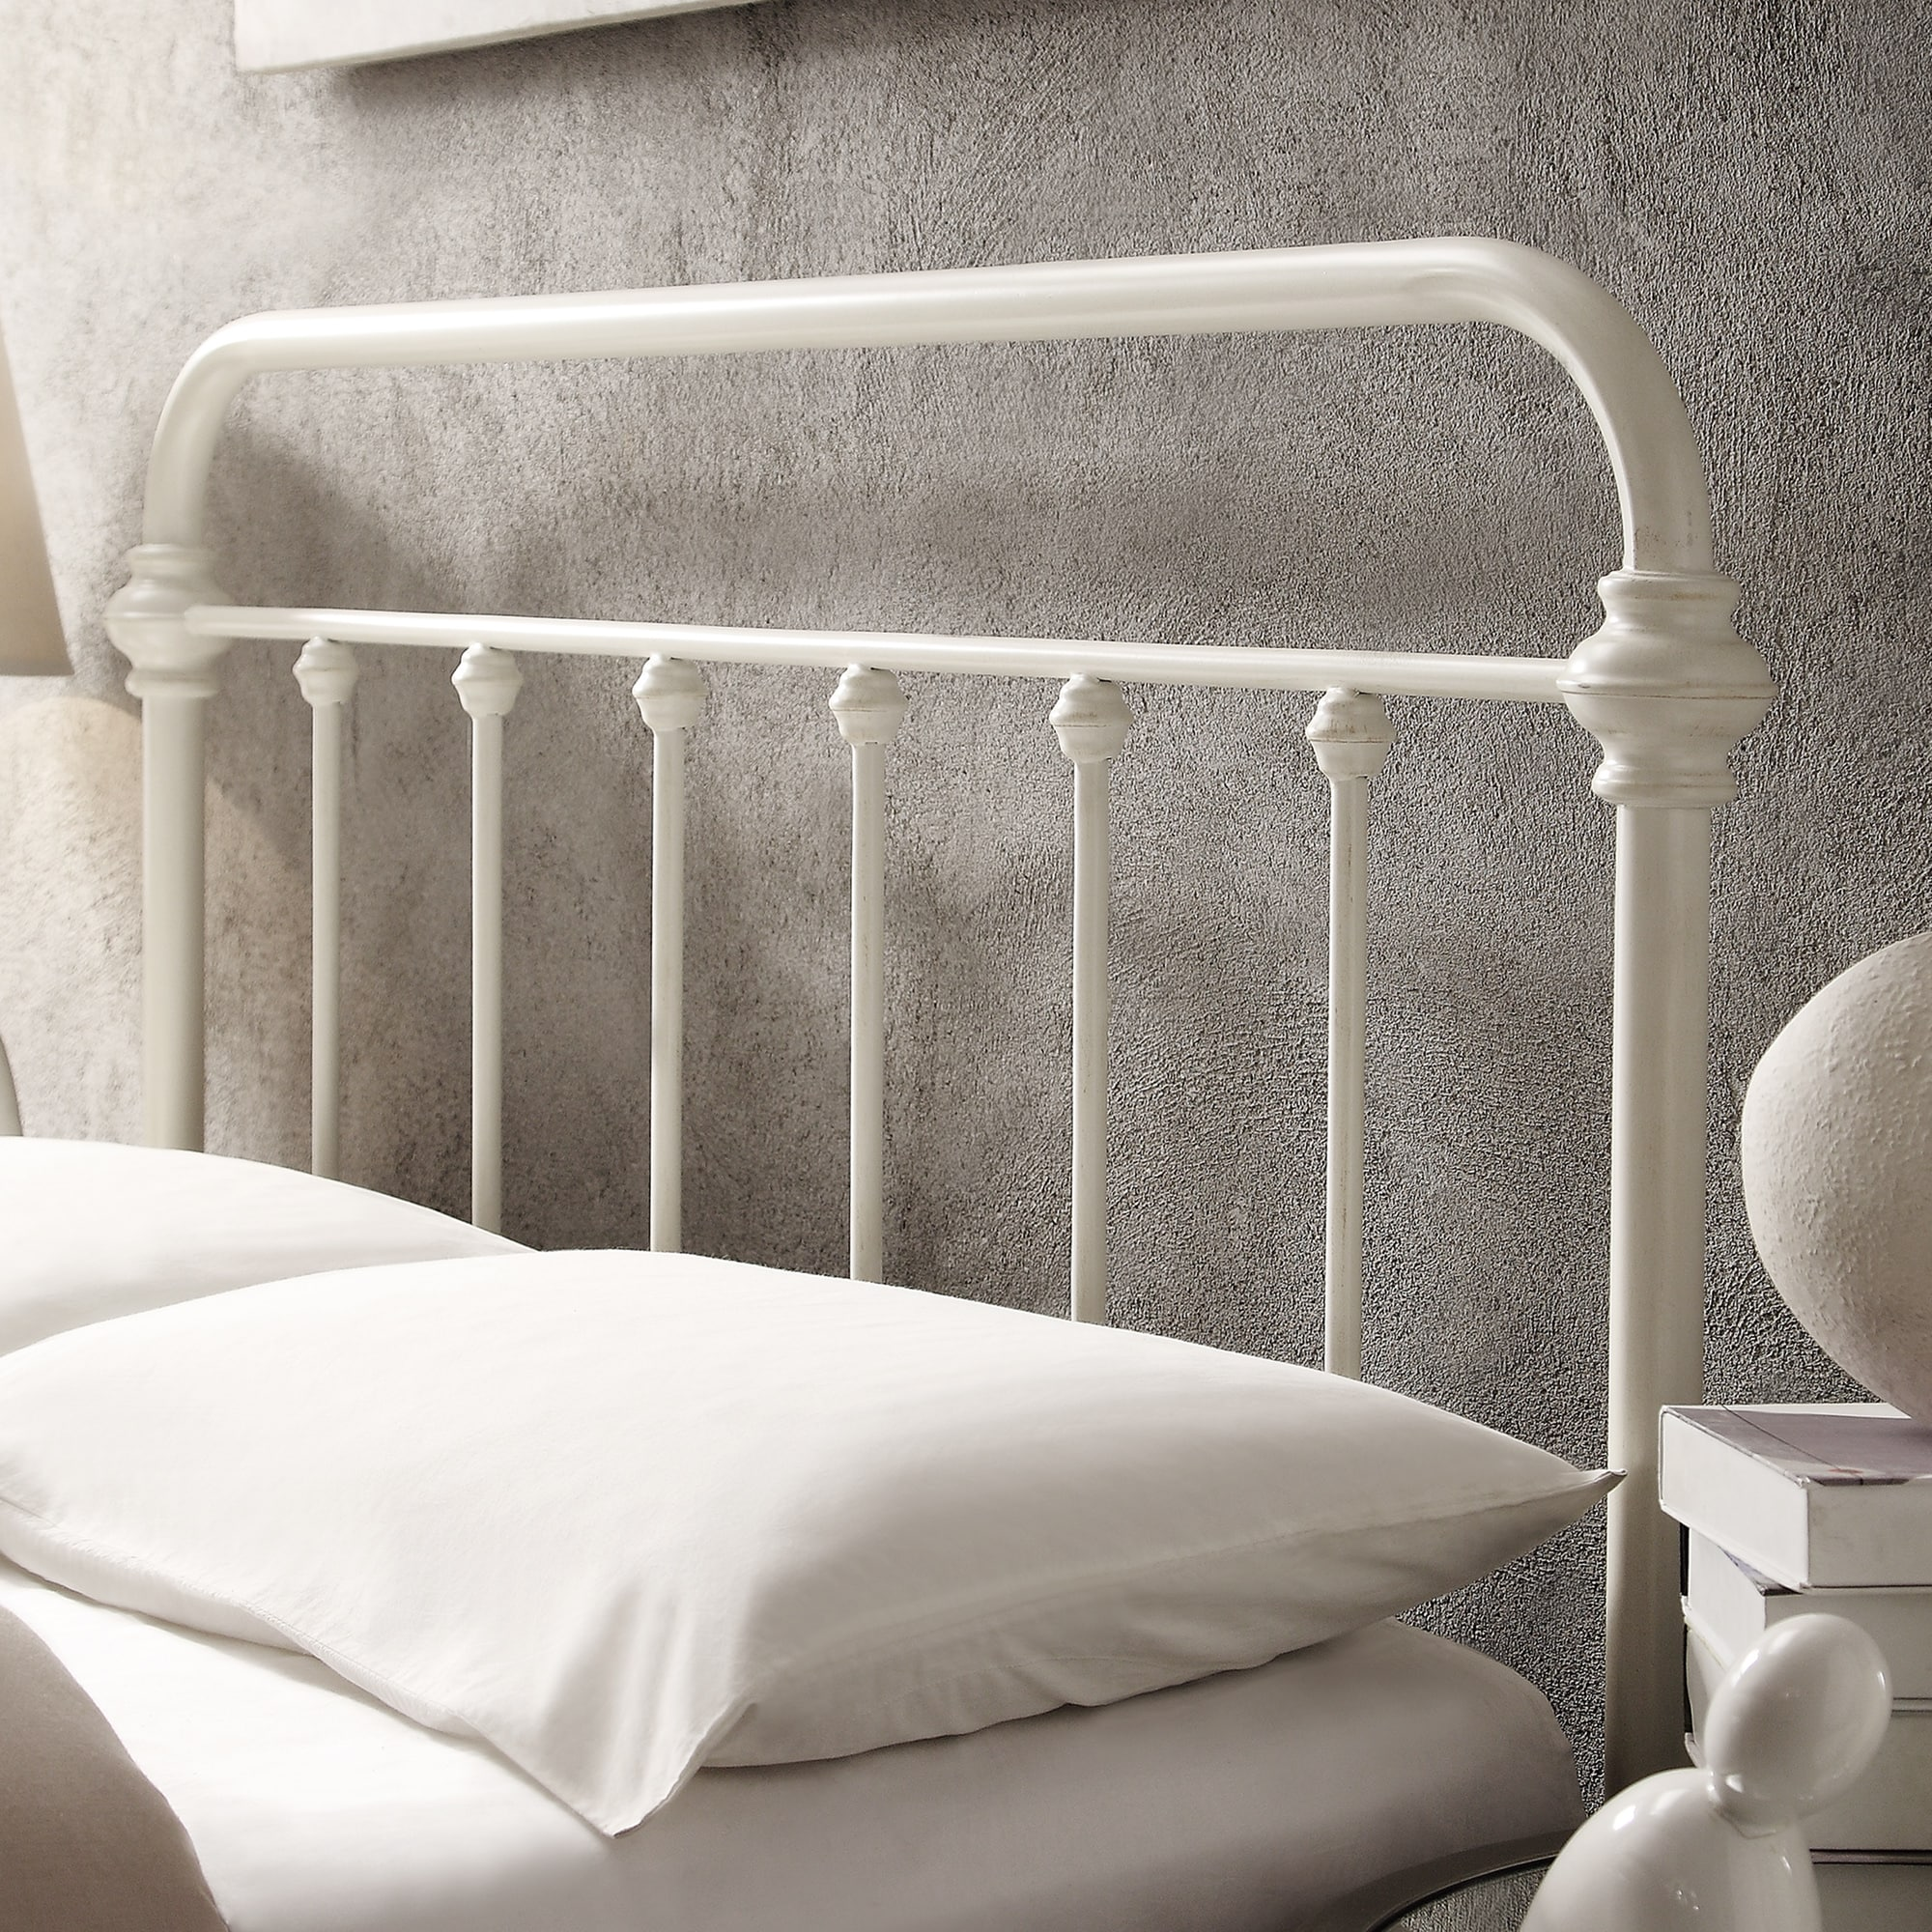 Giselle Antique White Graceful Lines Victorian Iron Metal Bed by iNSPIRE Q  Classic - Free Shipping Today - Overstock.com - 16301475